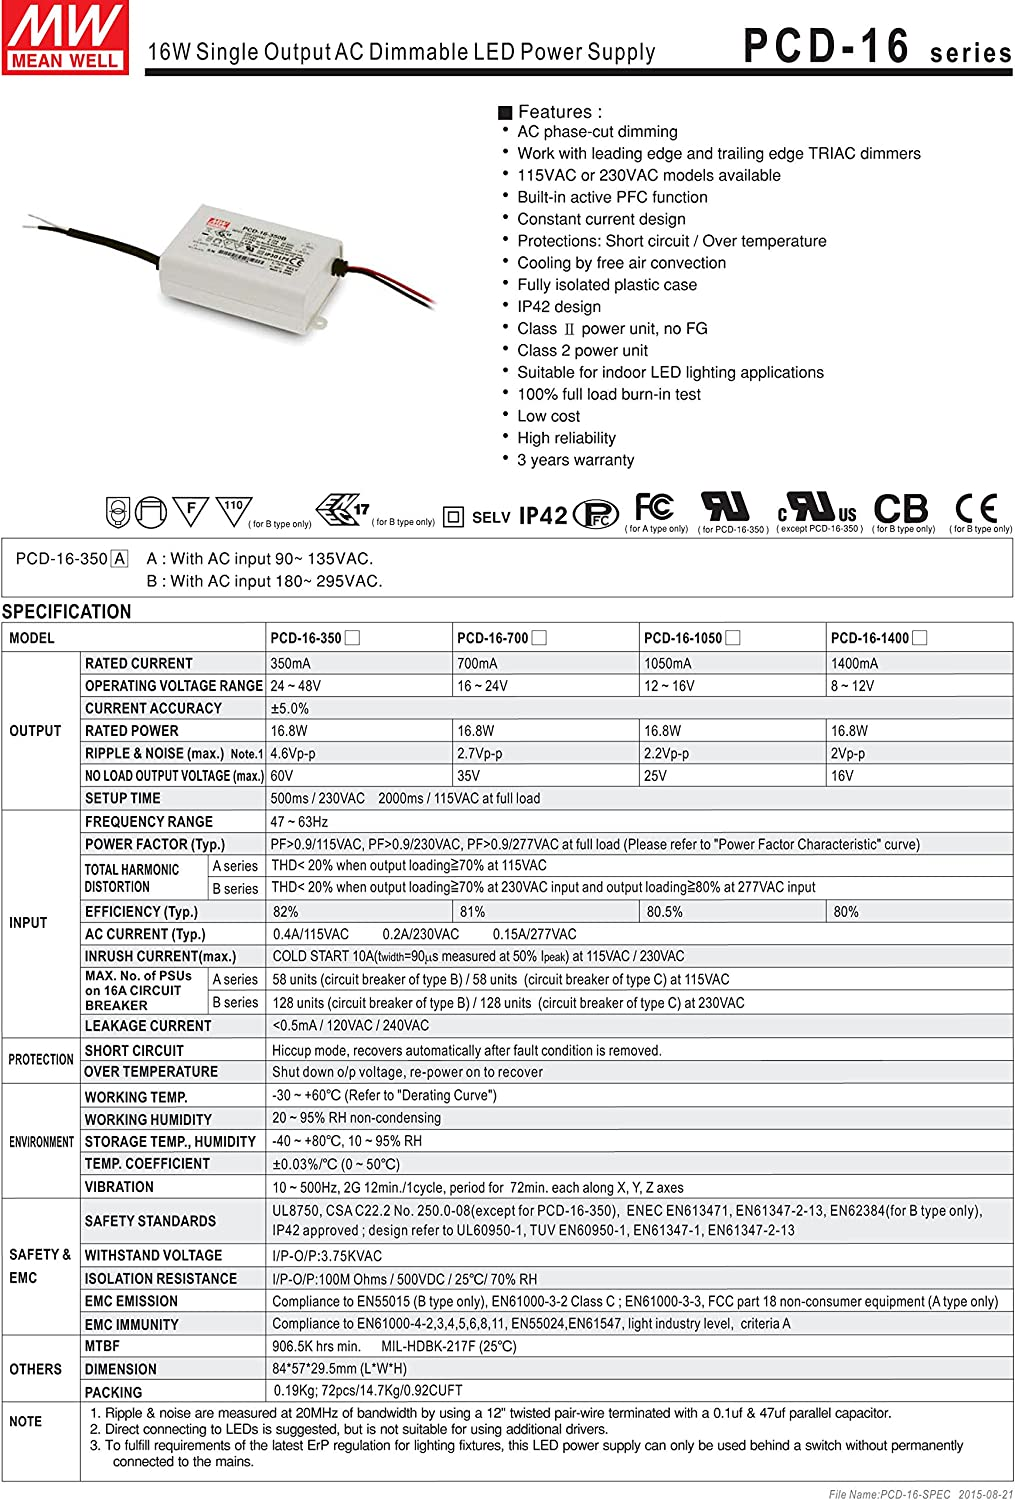 PowerNex Mean Well PCD-16-1400B 12V 1400mA 16.8W Single Output LED Power Supply with PFC